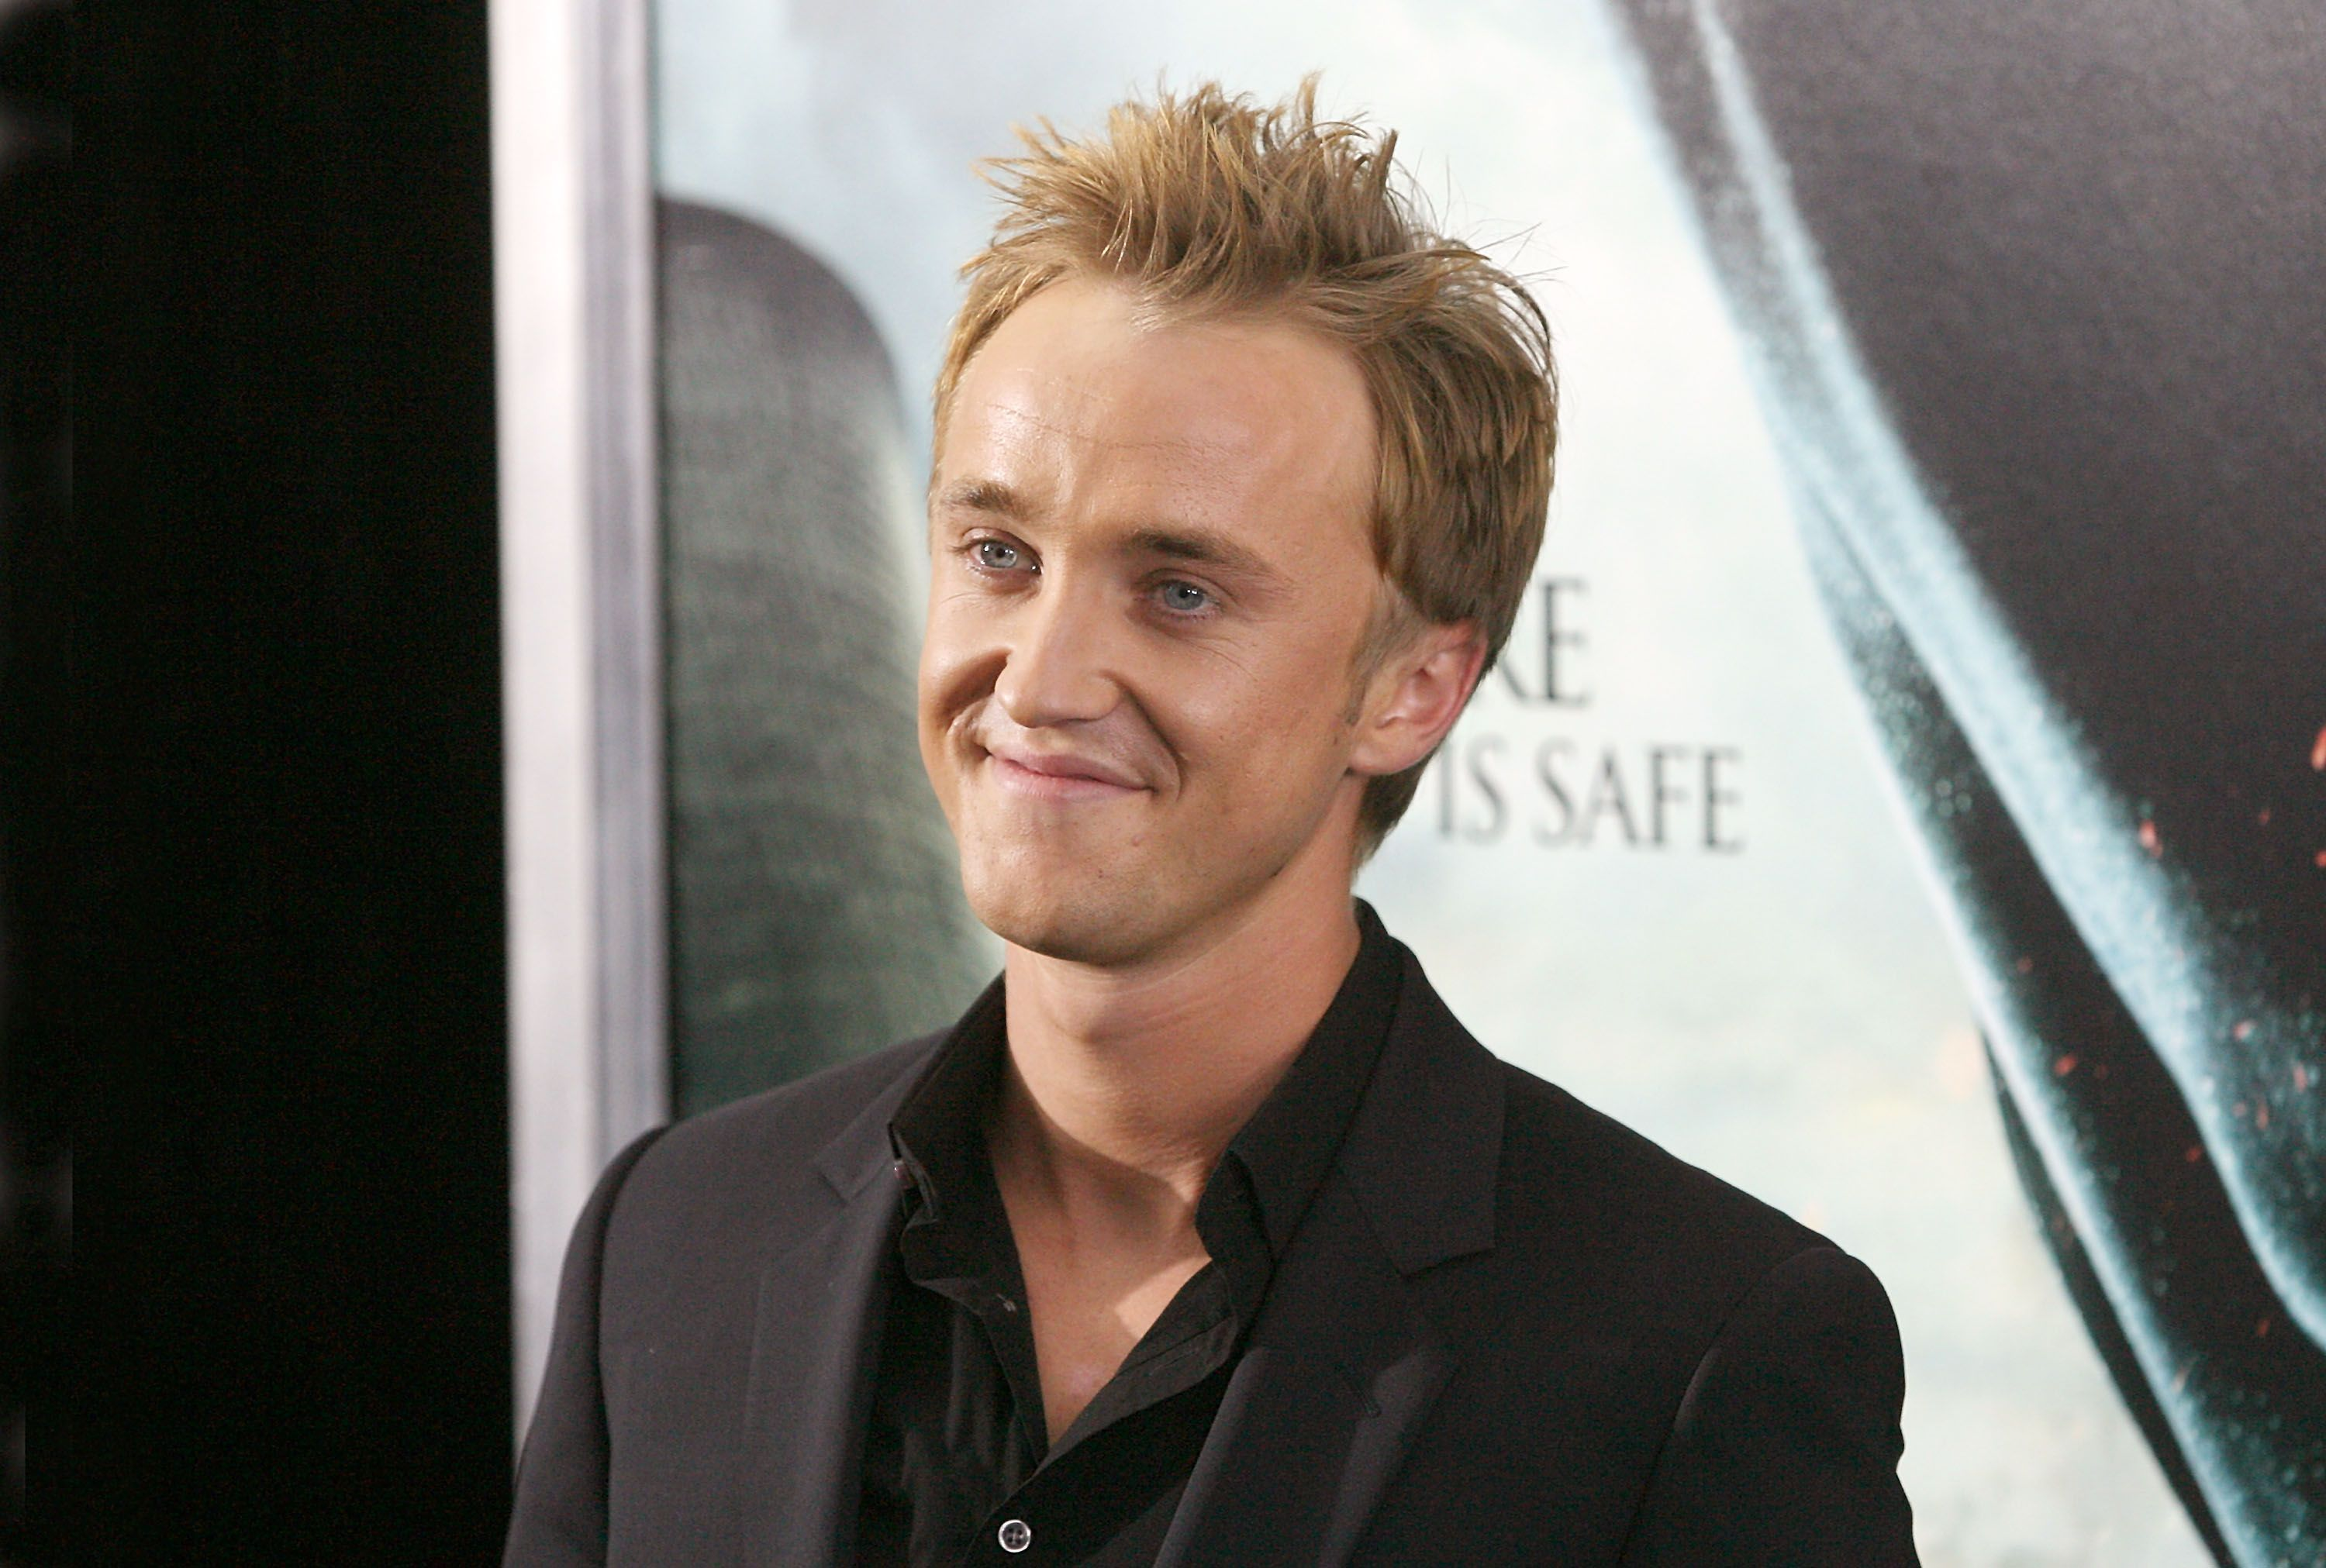 Tom Felton revealed he lacked freedom while starring in Harry Potter / Getty Images